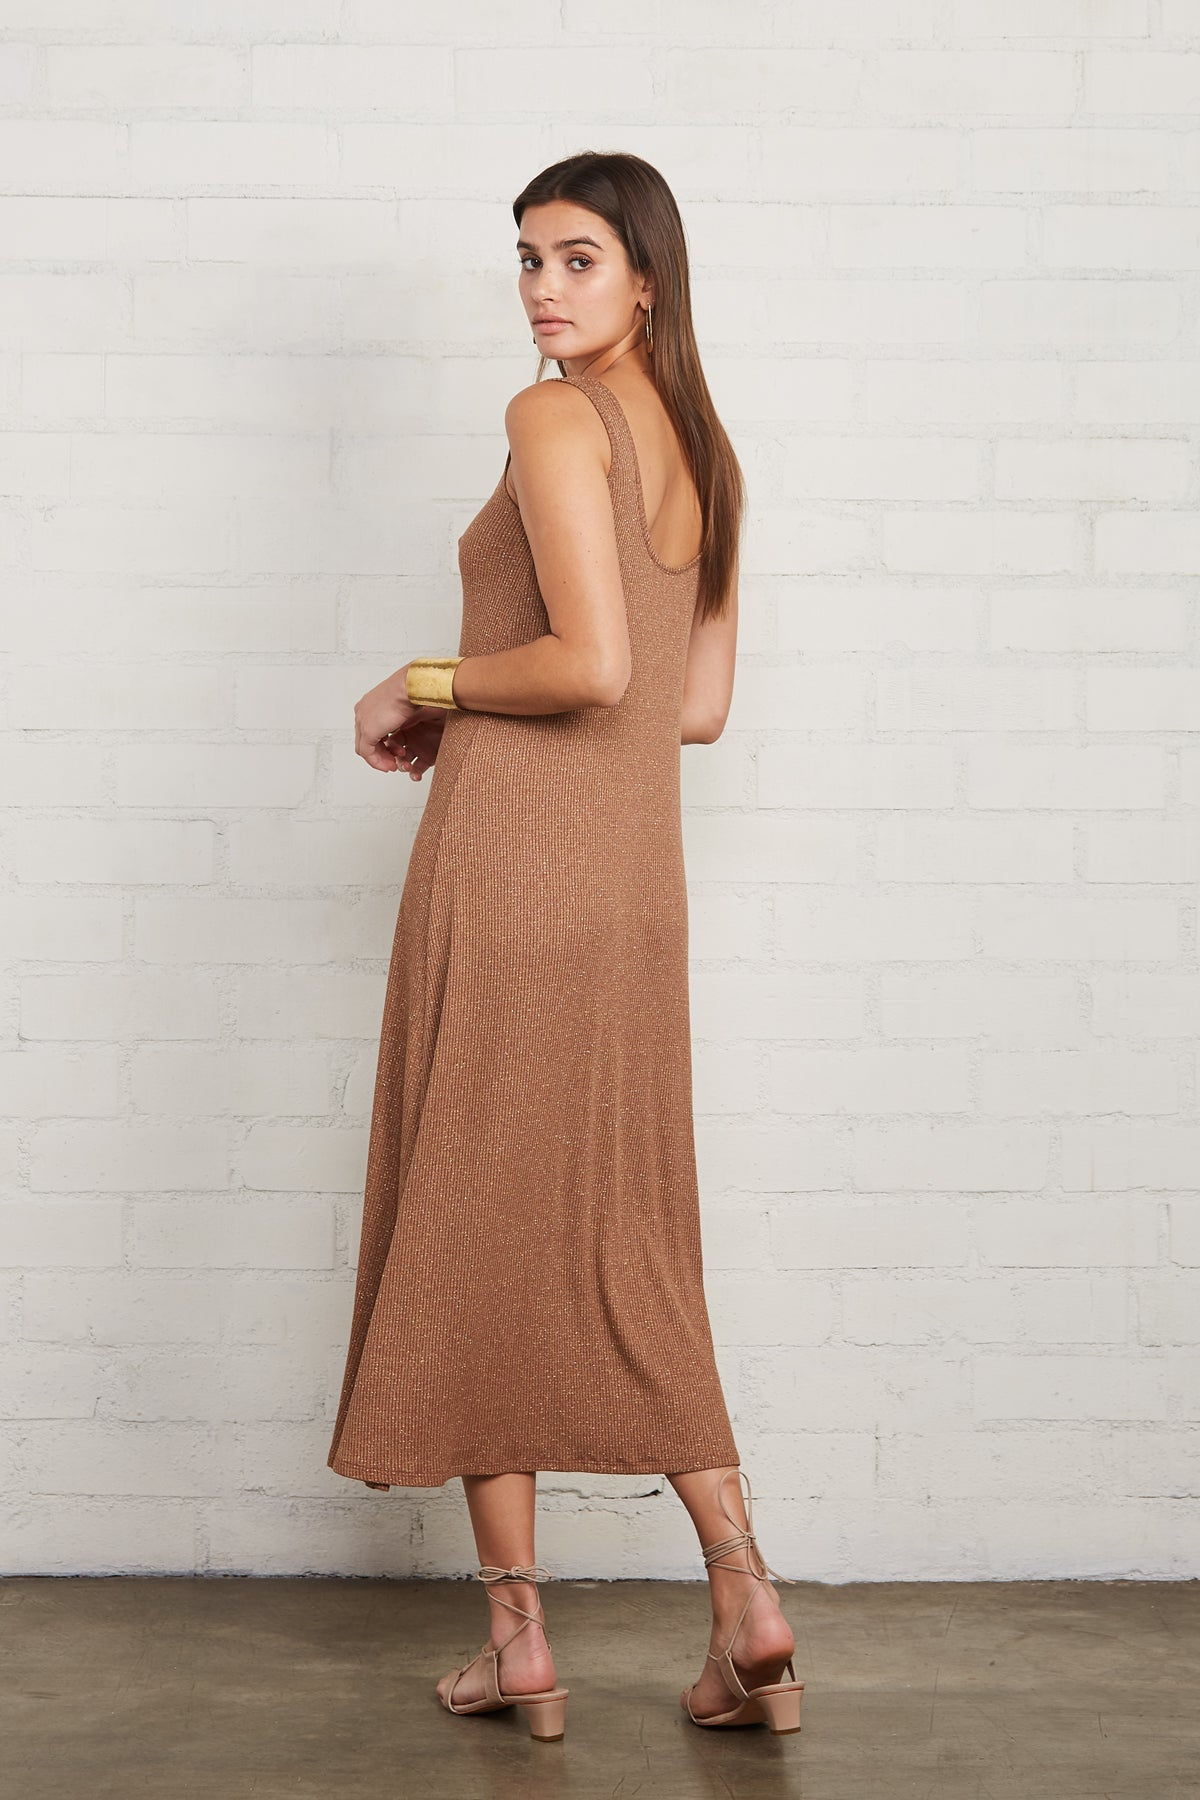 Metallic Rib Fiona Dress - Caramel Gold